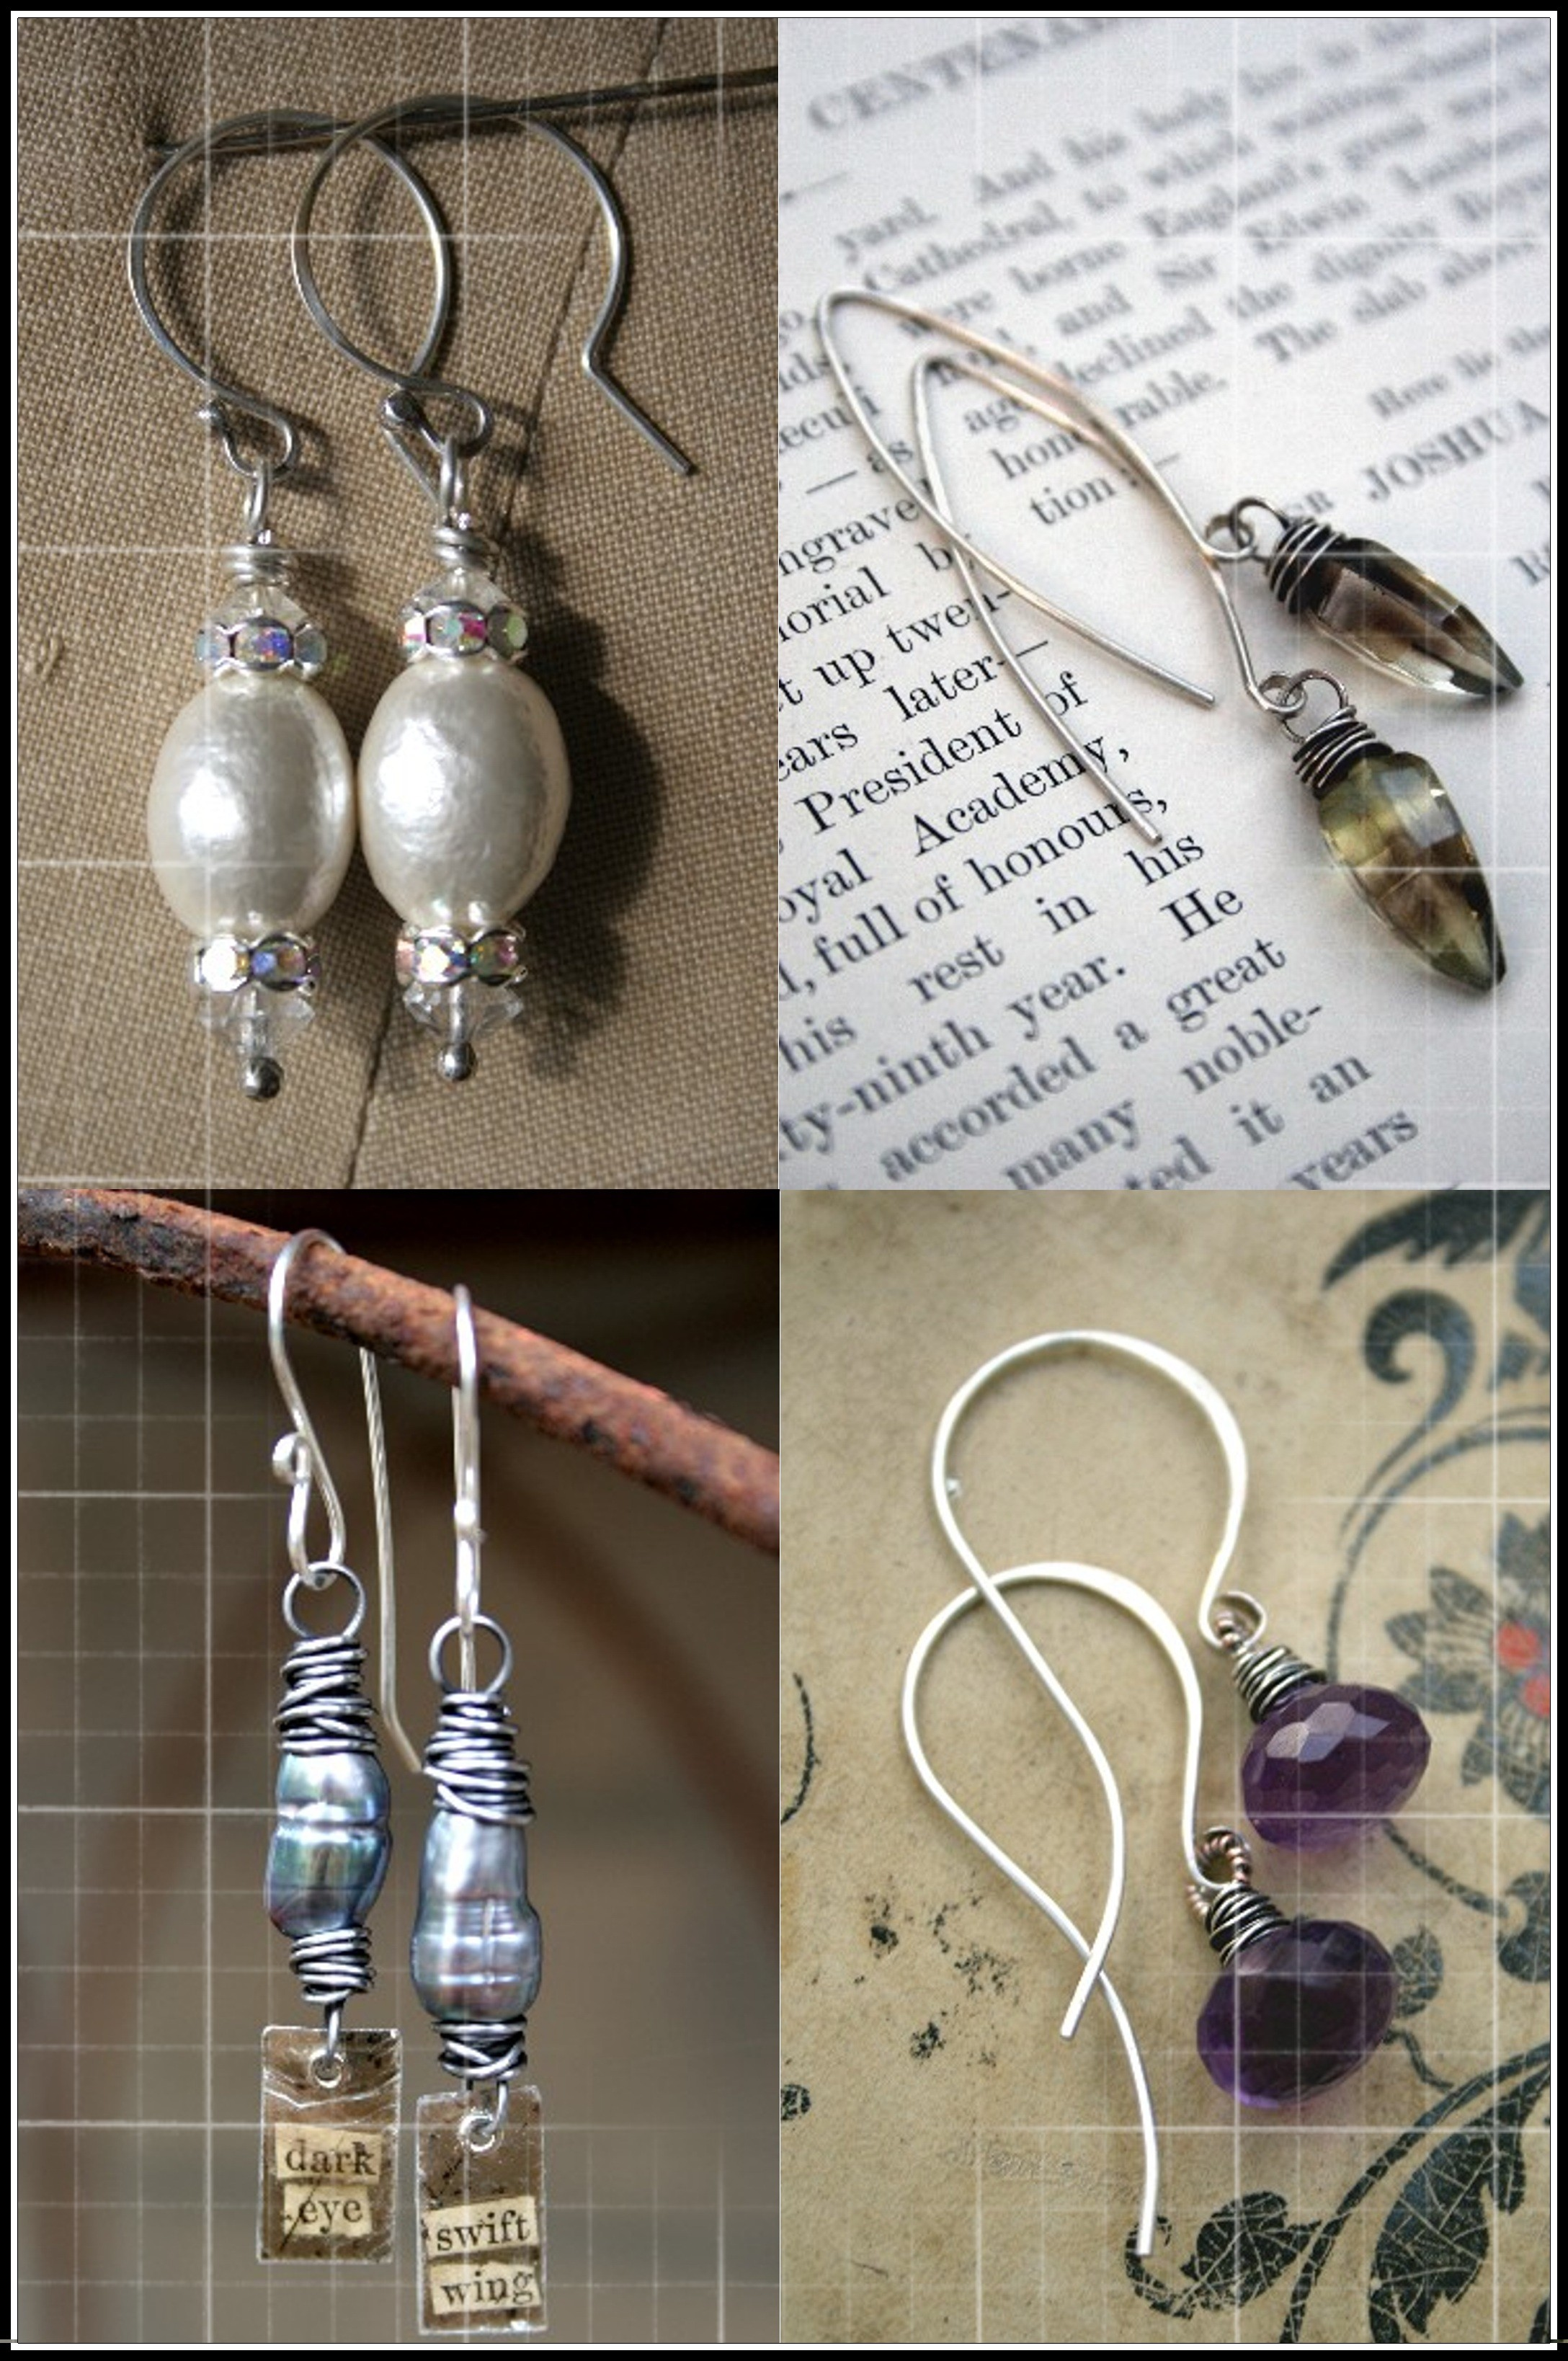 I Have A Pion For Beautiful Earrings Love To Wear Them And Make Because Also Crave Variety Ve Learned My Own Ear Wires